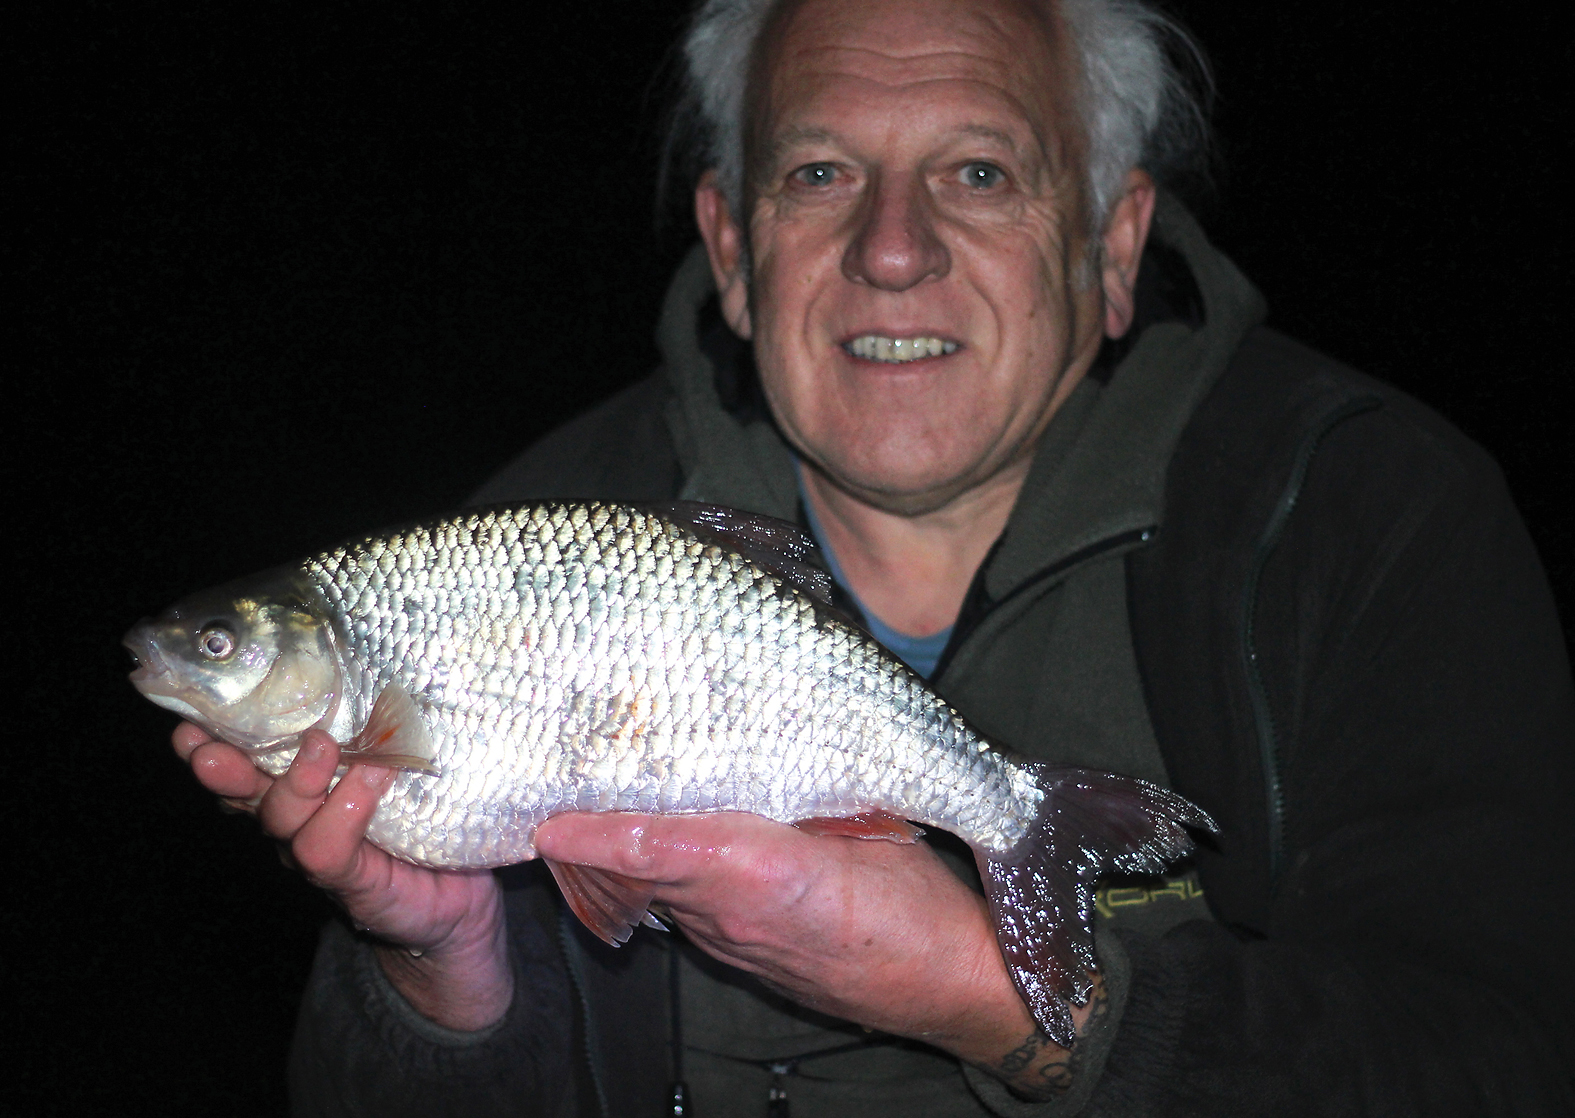 A beatiful 3lb+ roach caught by Norfolk angler Chris Turnbull from a local carp lake